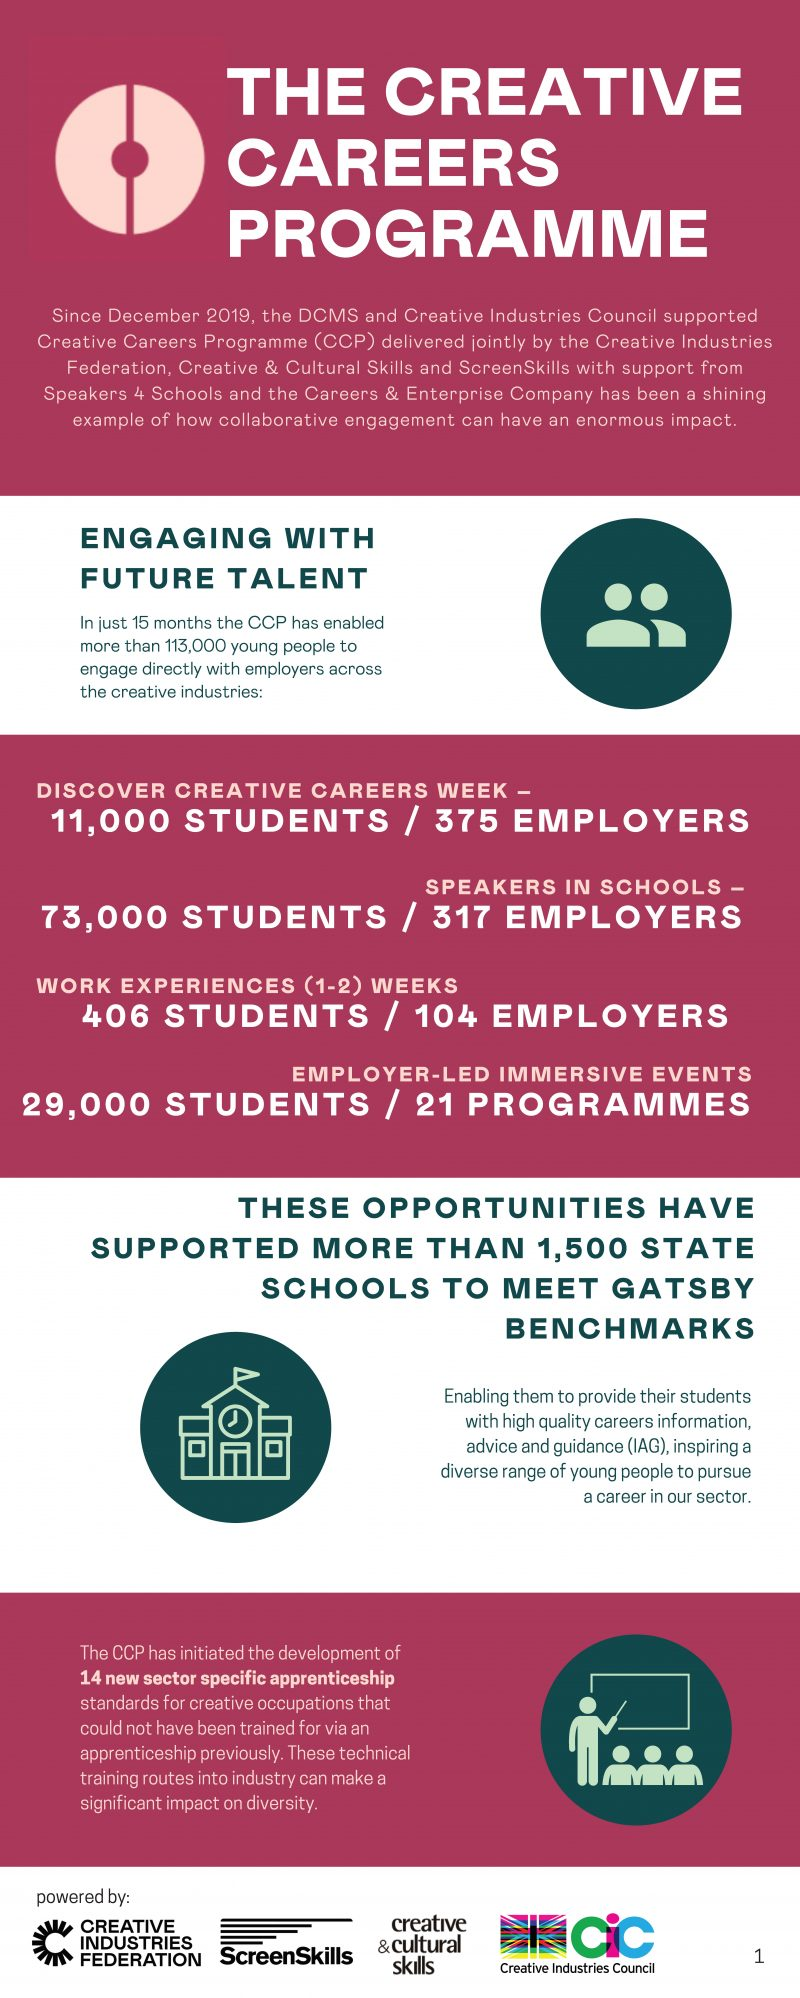 Since December 2019, the DCMS and Creative Industries Council supported Creative Careers Programme (CCP) delivered jointly by the Creative Industries Federation, Creative & Cultural Skills and ScreenSkills with support from Speakers 4 Schools and the Careers & Enterprise Company has been a shining example of how collaborative engagement can have an enormous impact.